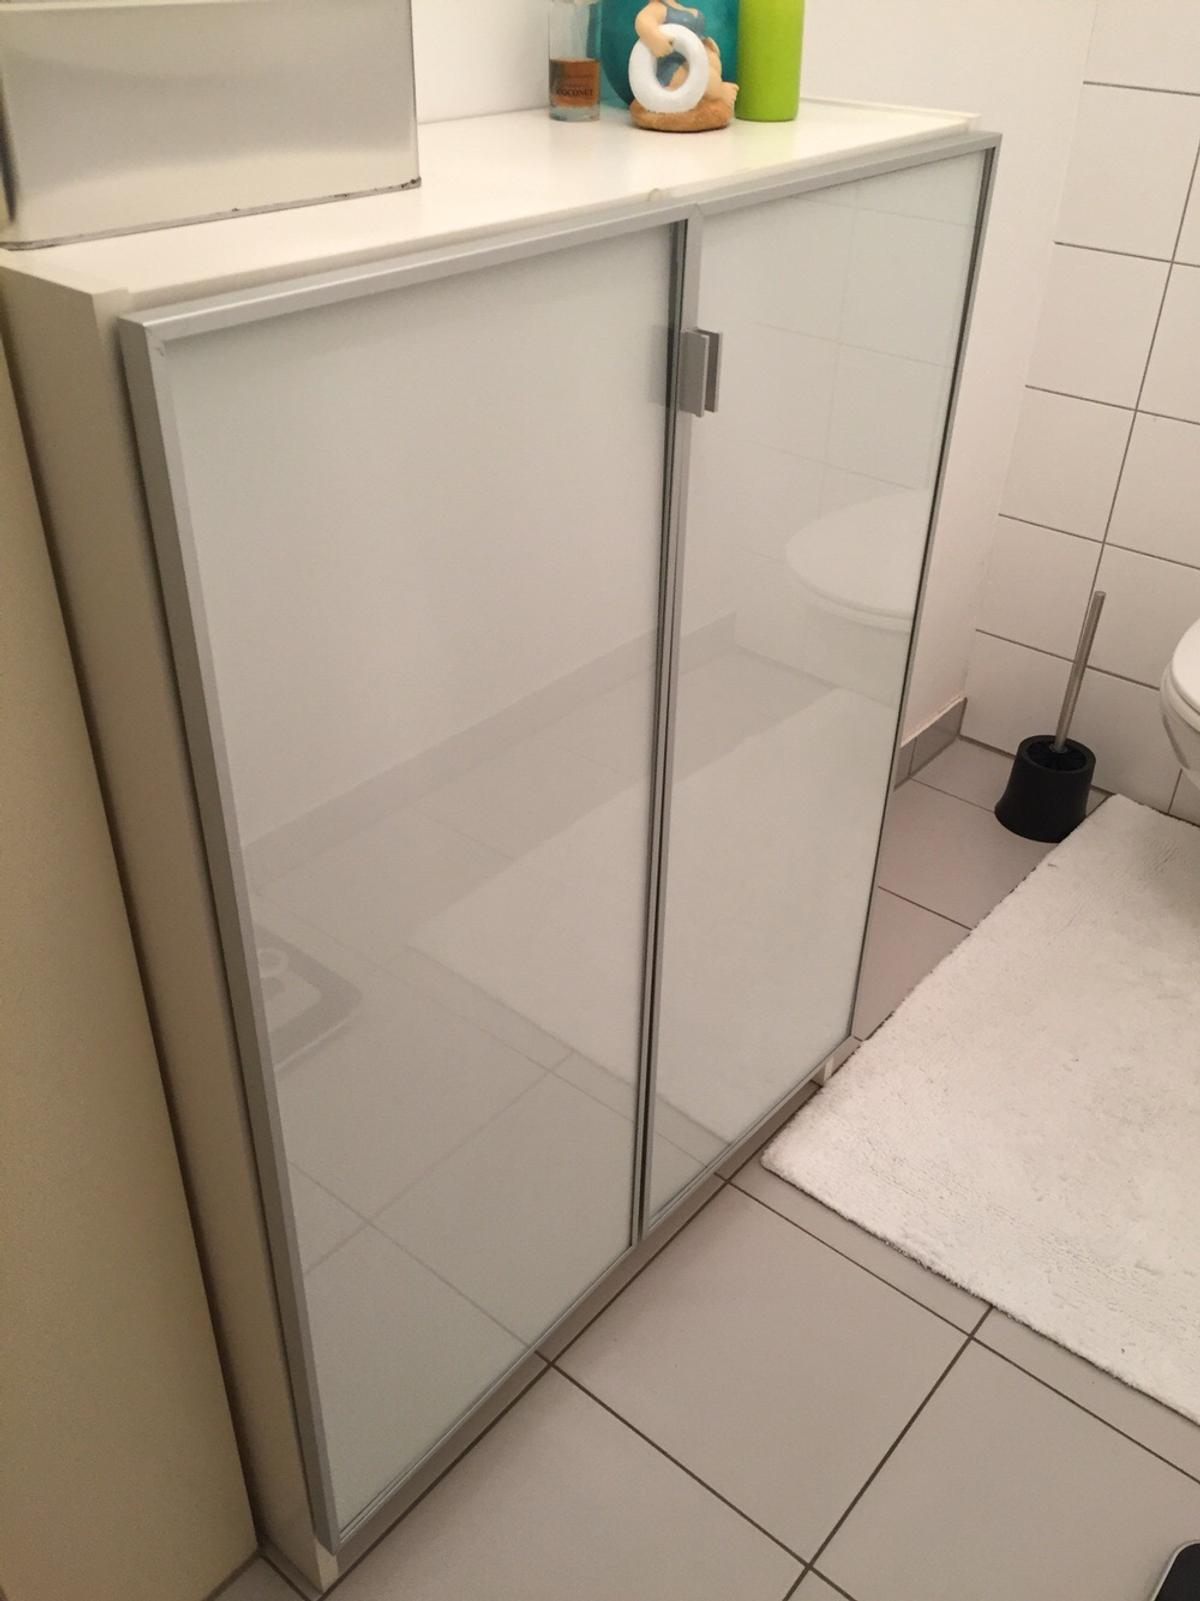 Billy Morliden Weiss Regal Mit Turen Schrank In 1160 Wien For 25 00 For Sale Shpock